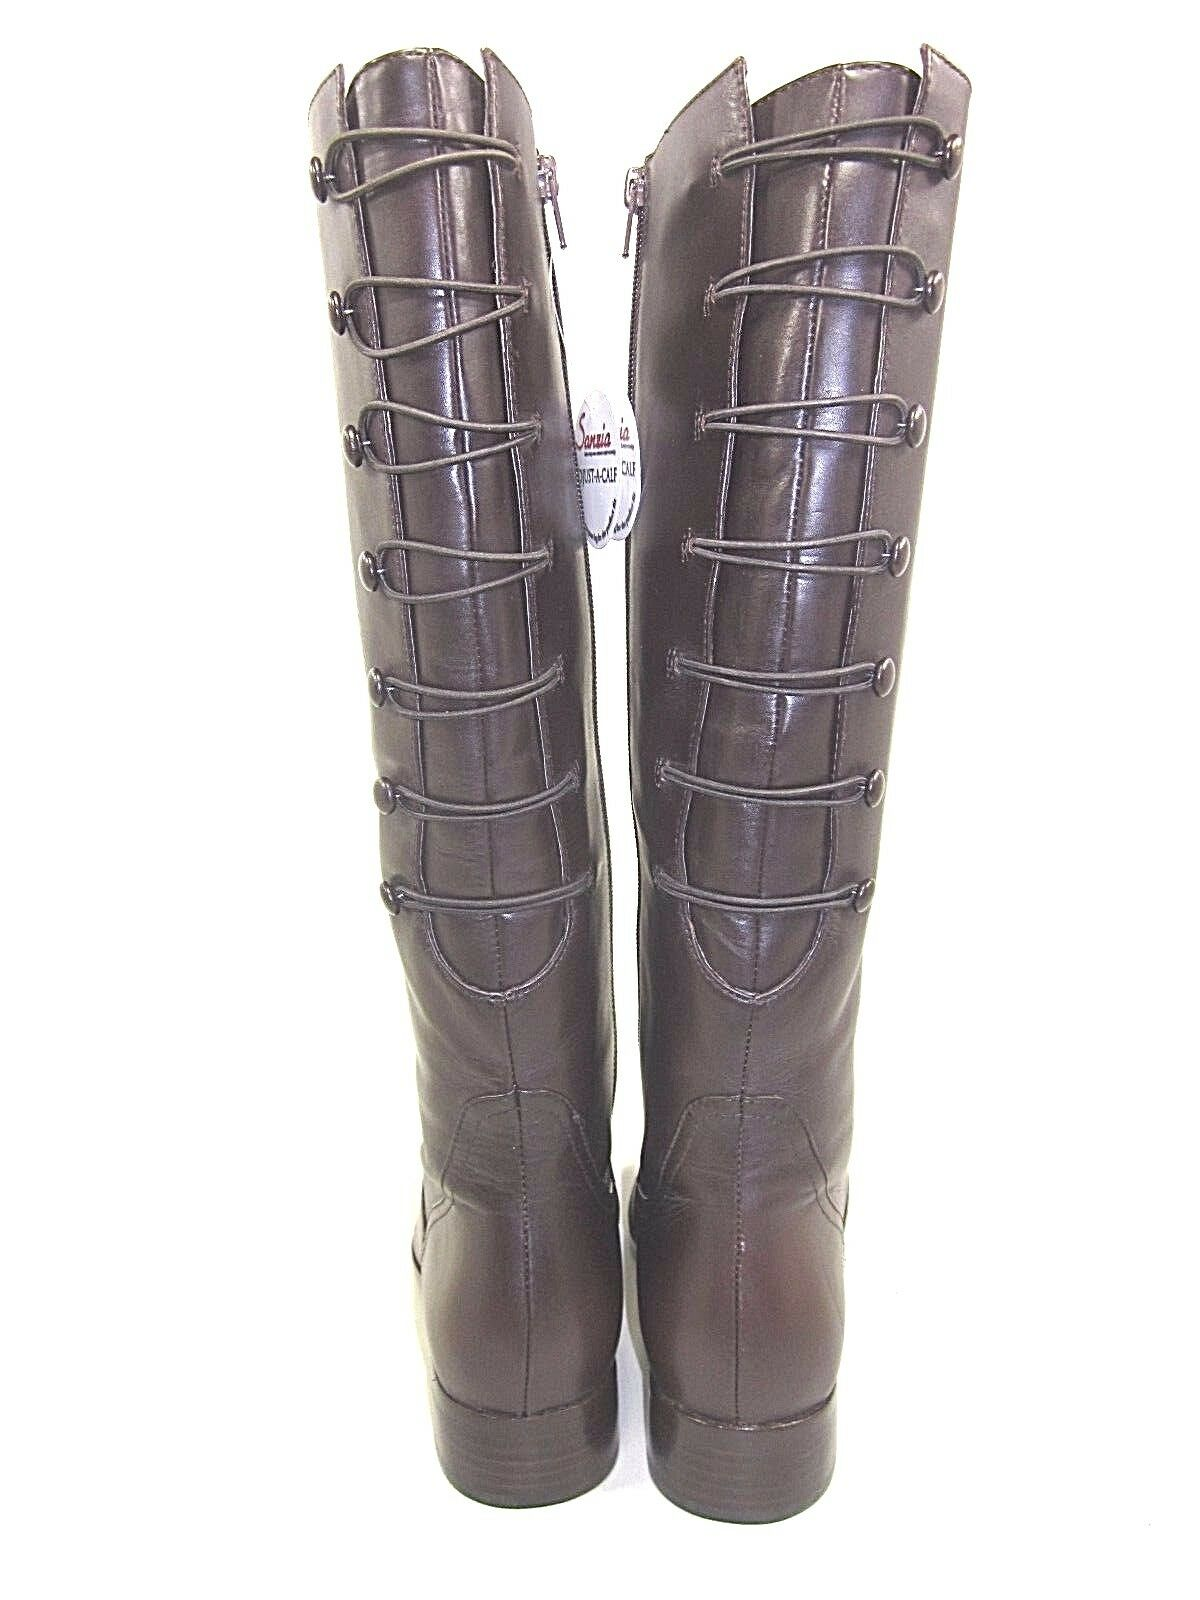 SANZIA, VINTAGE BUTTON RIDING BOOT, WOMENS, CHOCOLATE CALF, US 9.5W, 9.5W, 9.5W, NEW W O BOX b469c0